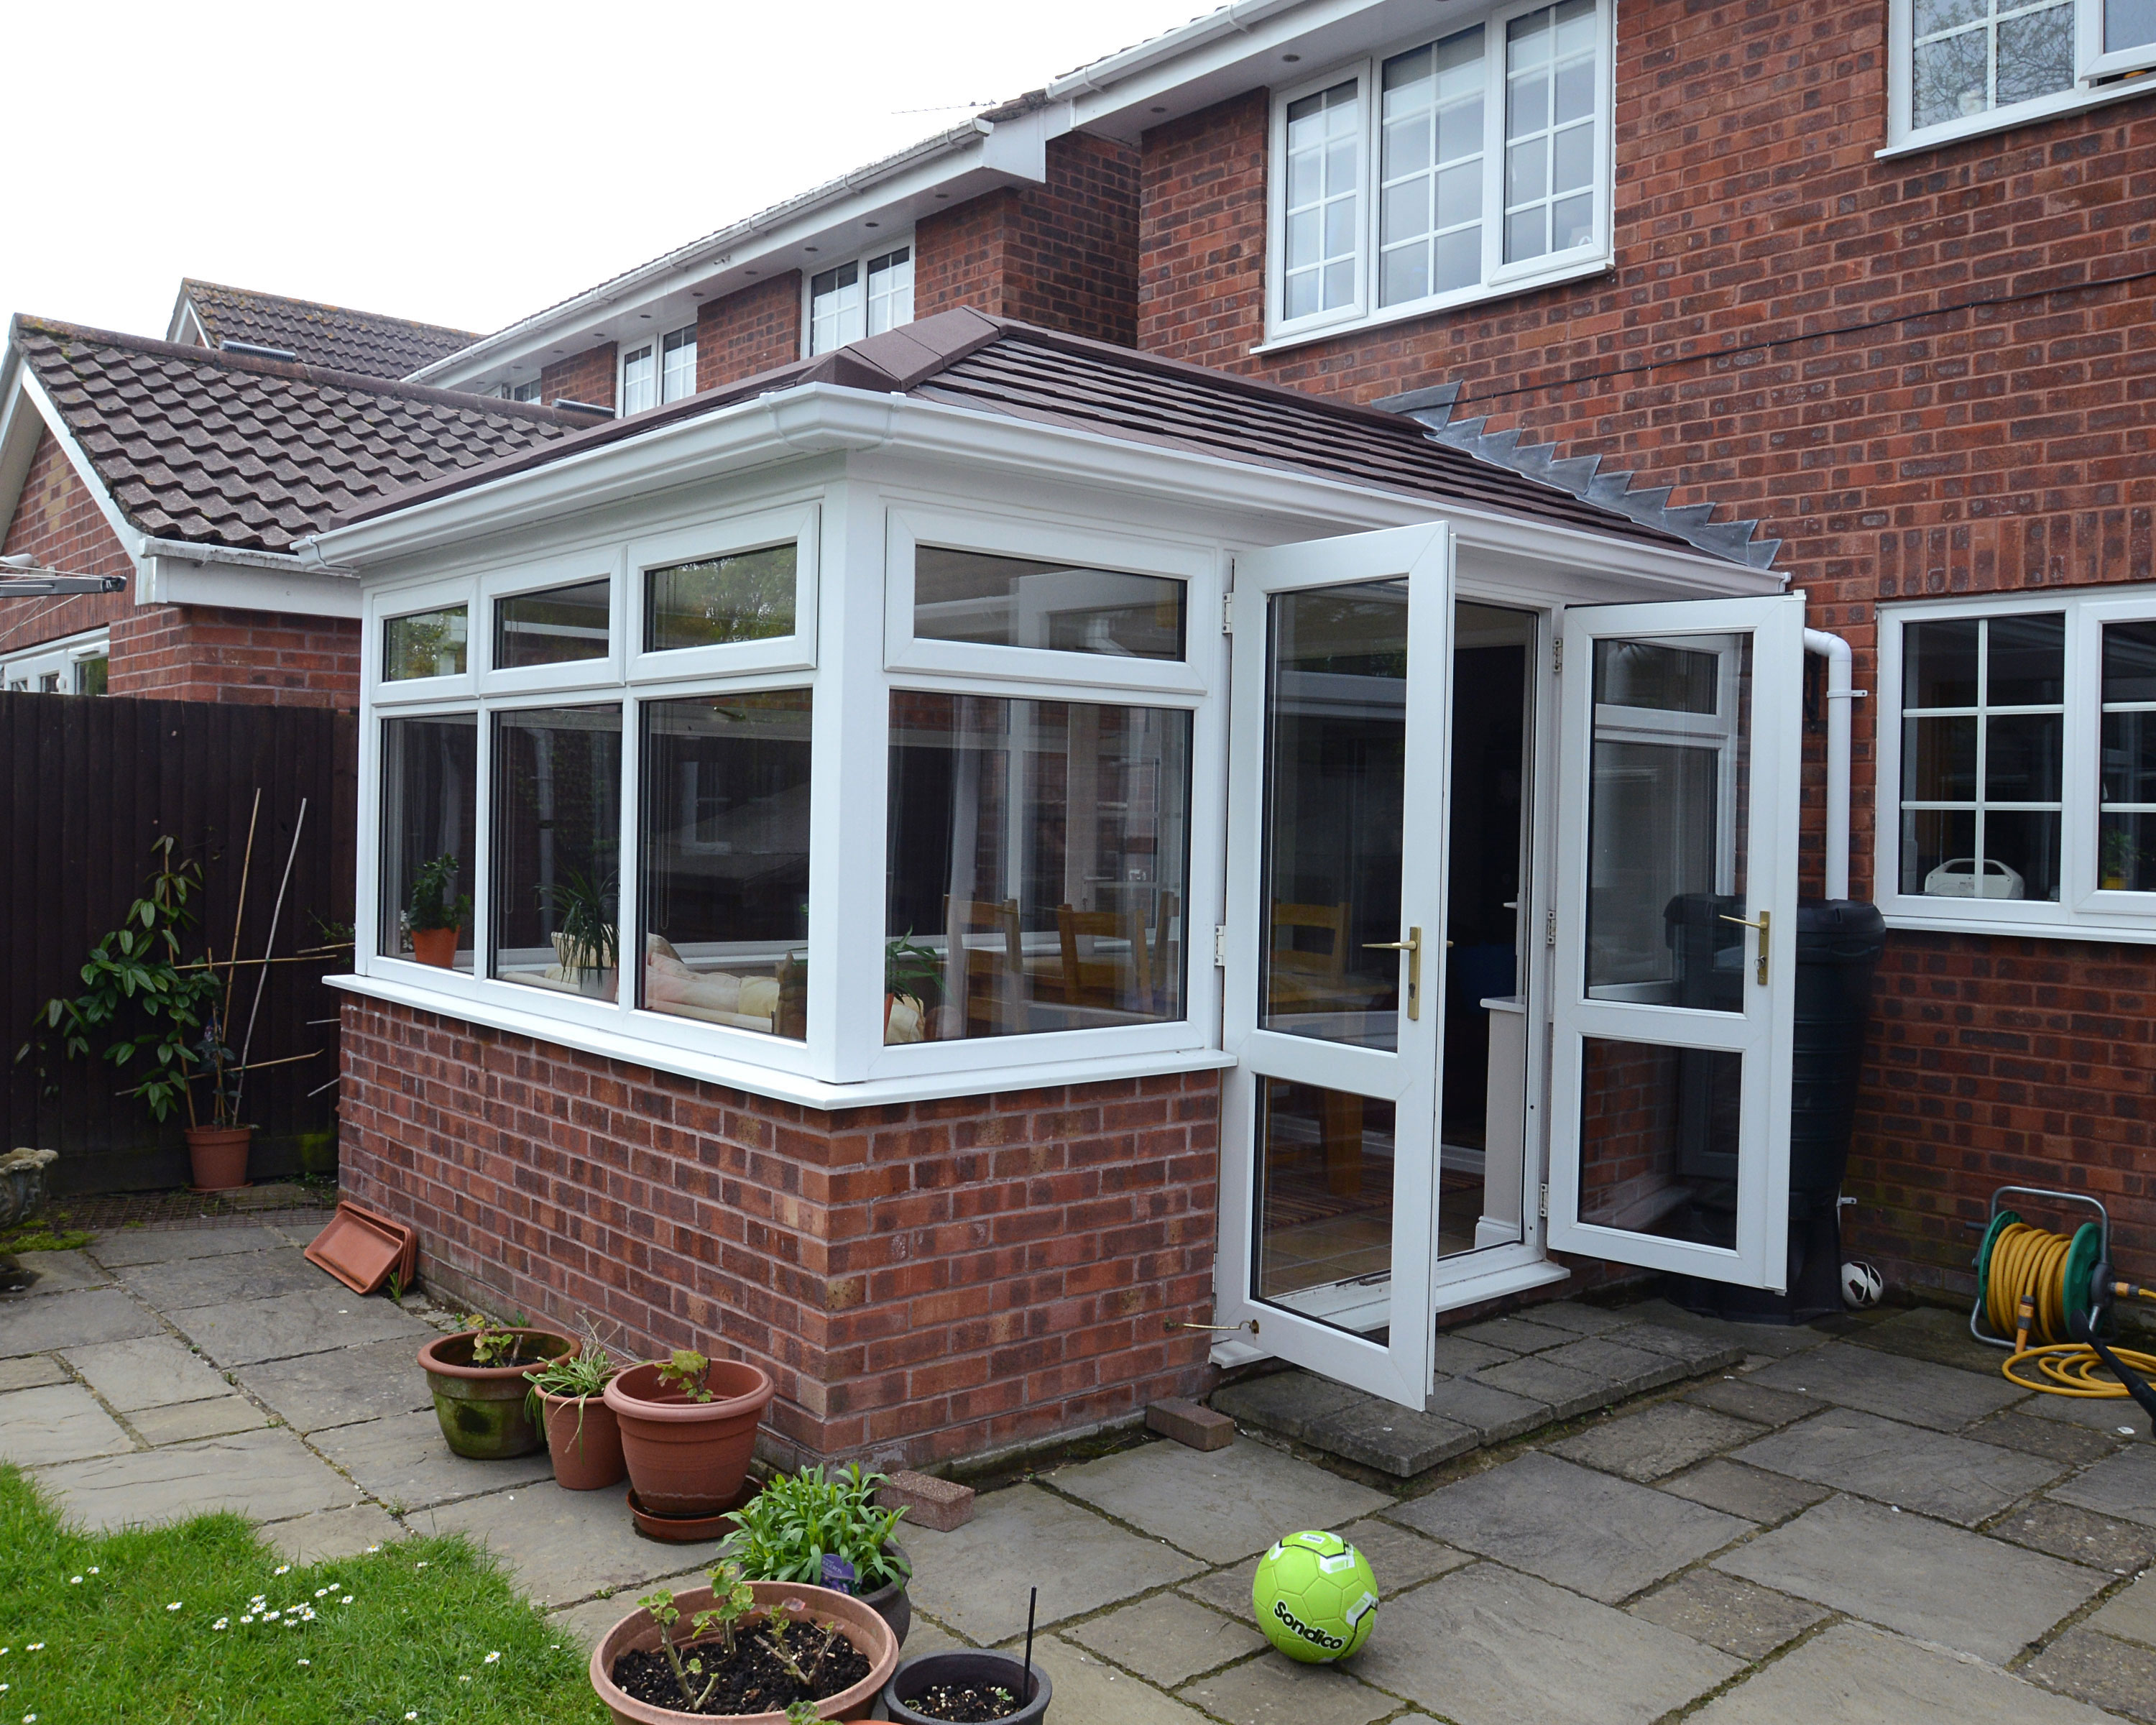 Tiled-Edwardian-Conservatory-Roof-in-Southampton